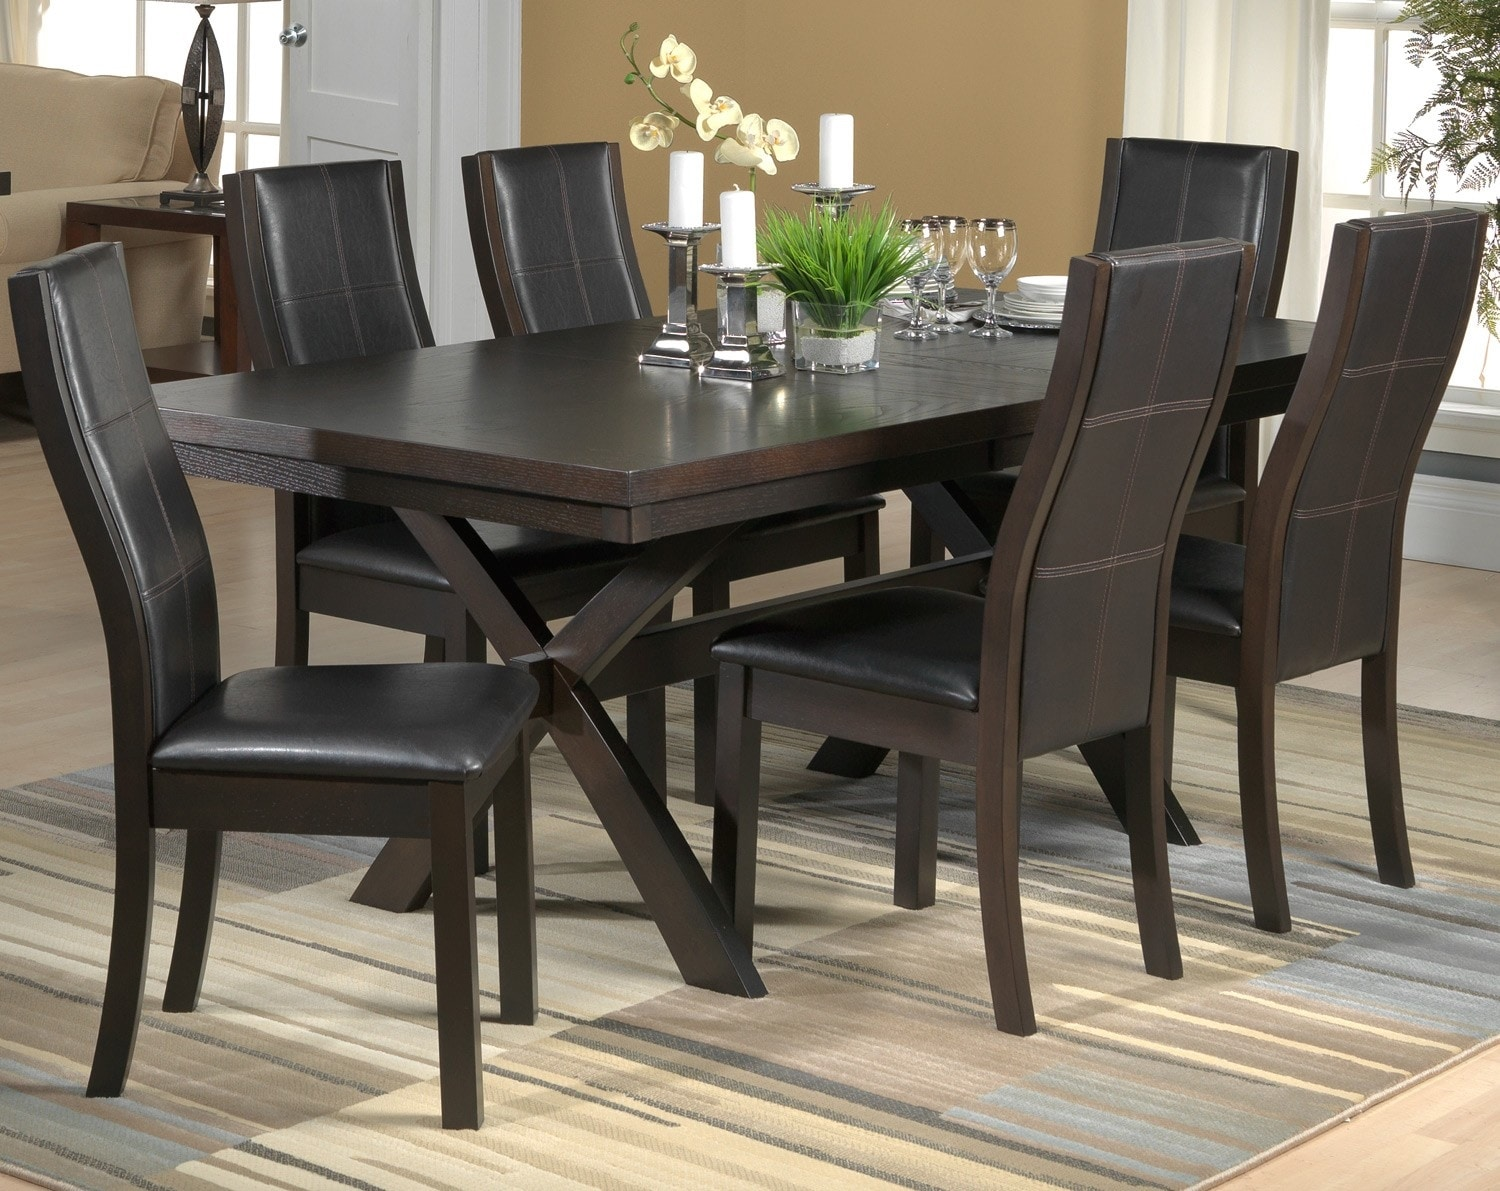 Grethell 7 piece dining room set espresso leon 39 s for Meuble chez leon quebec